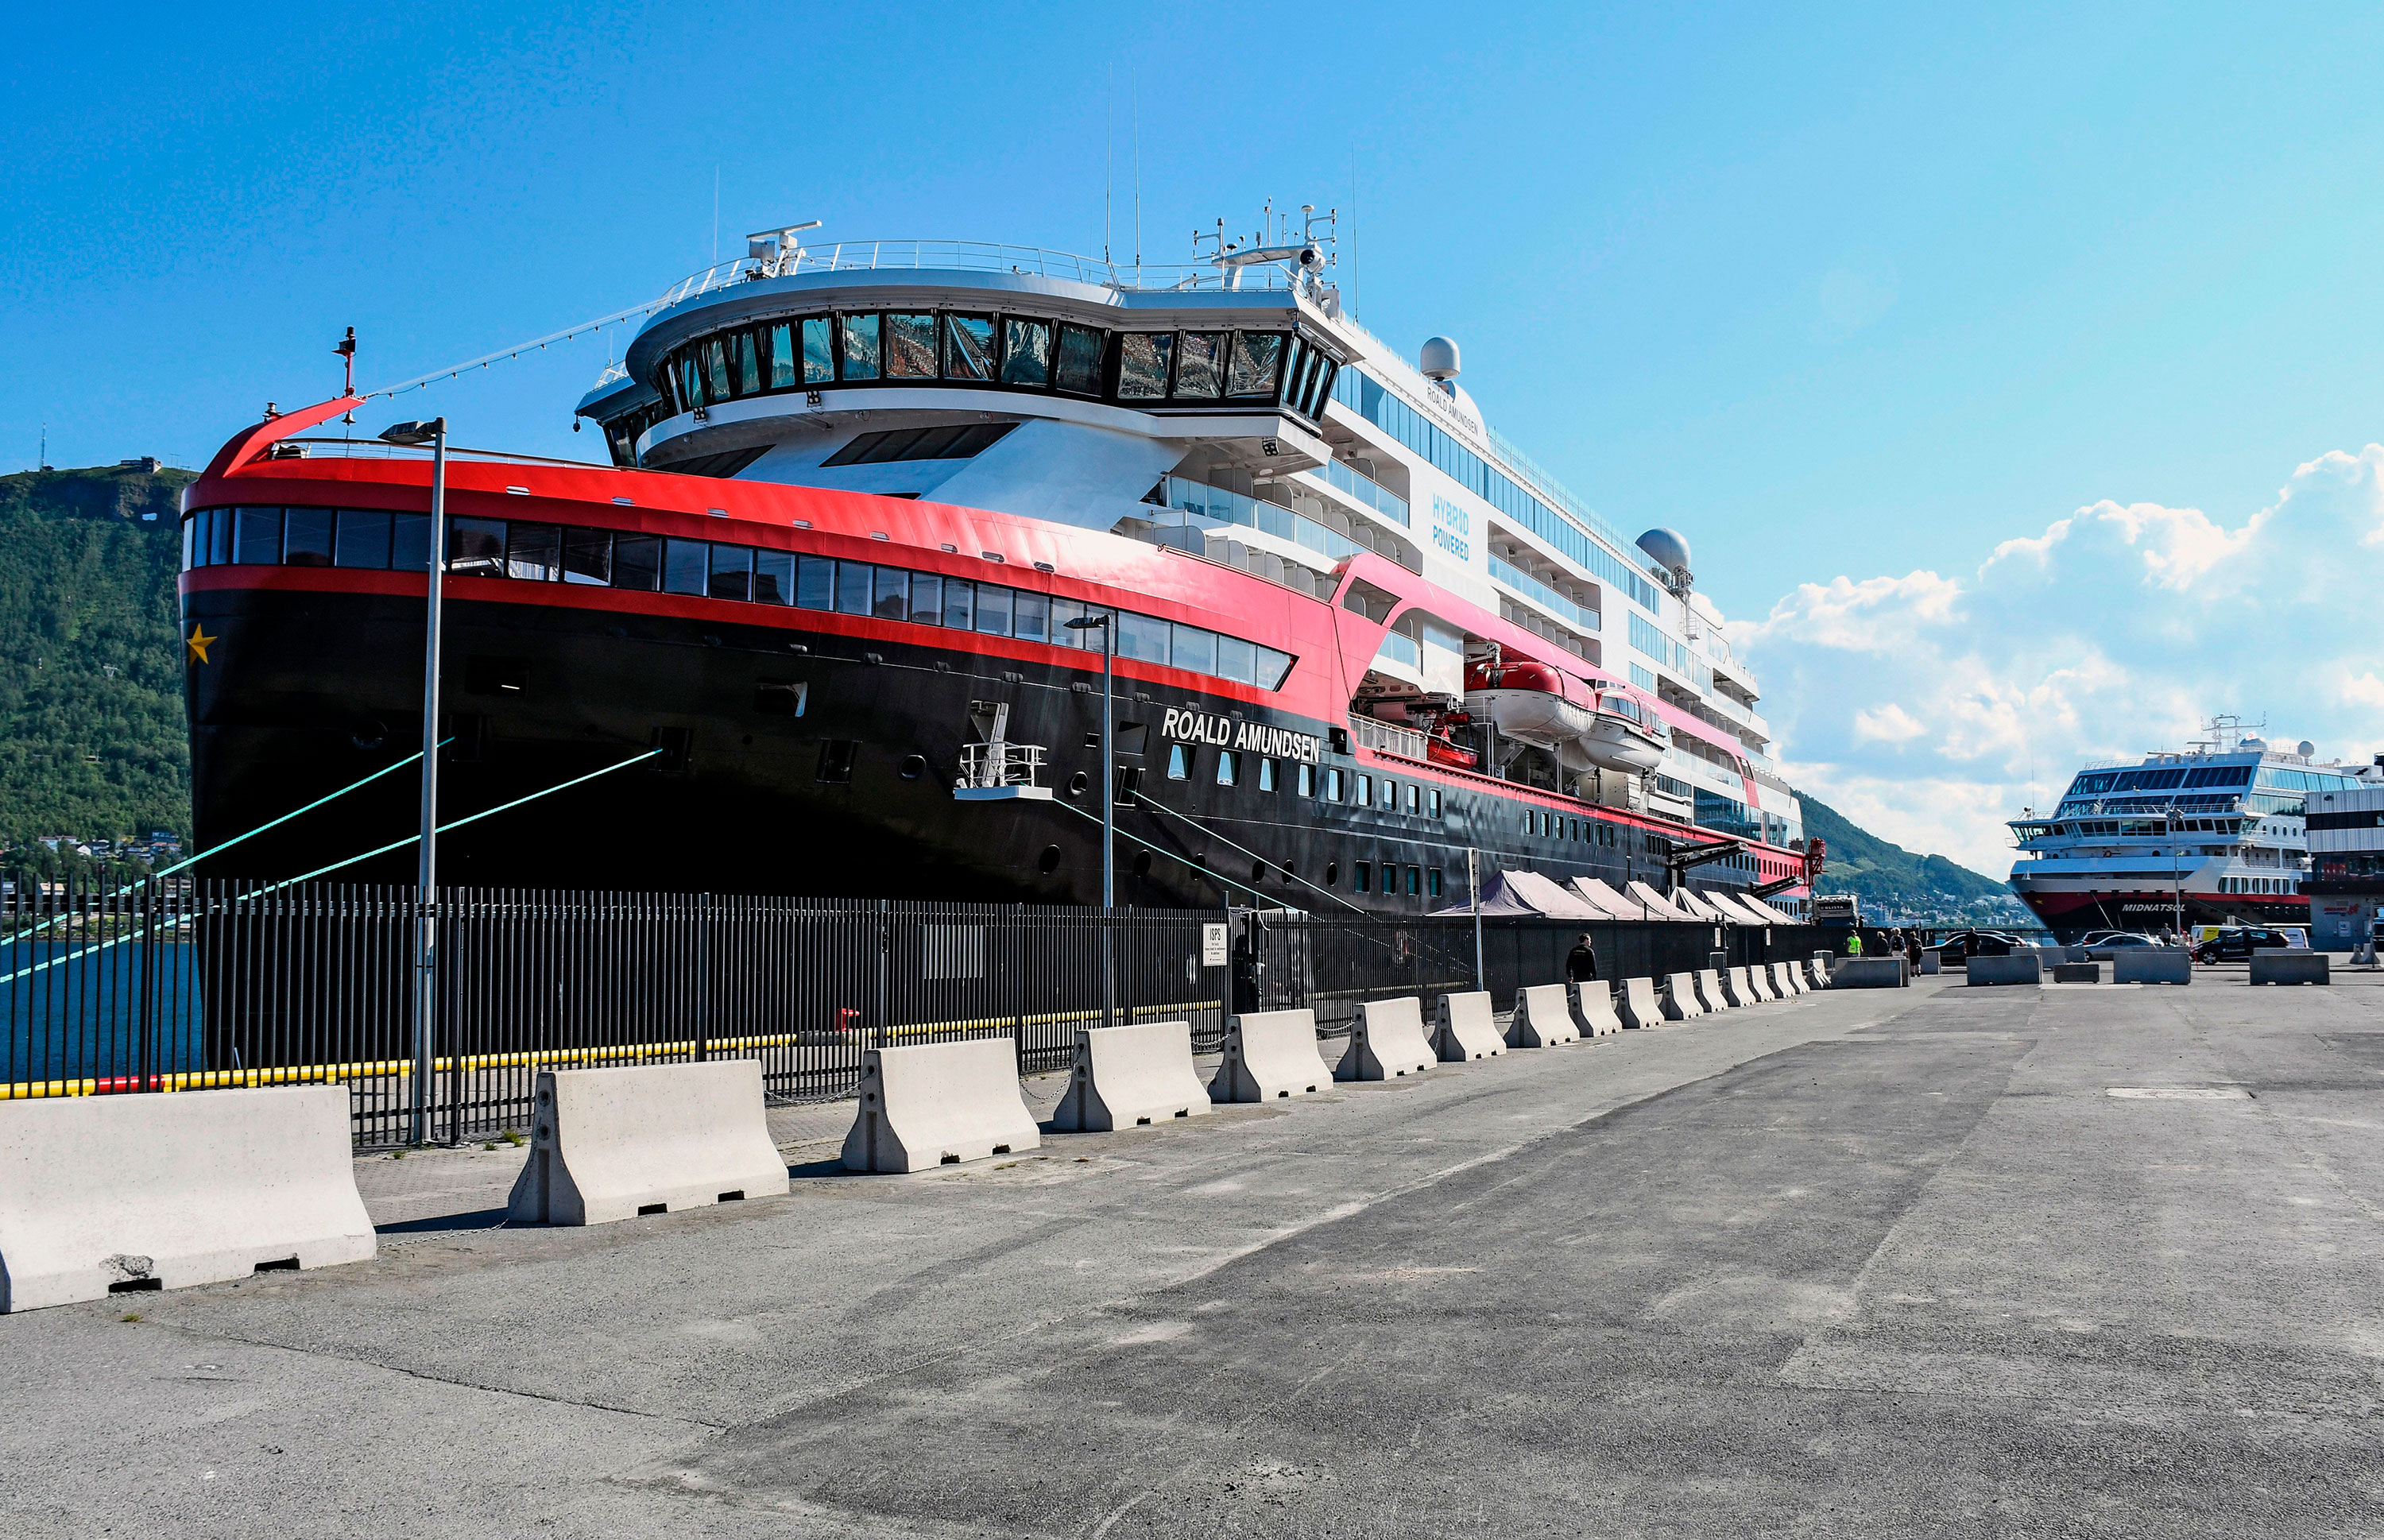 The expedition cruise ship MS Roald Amundsen is docked on July 31 in Tromso, Norway.